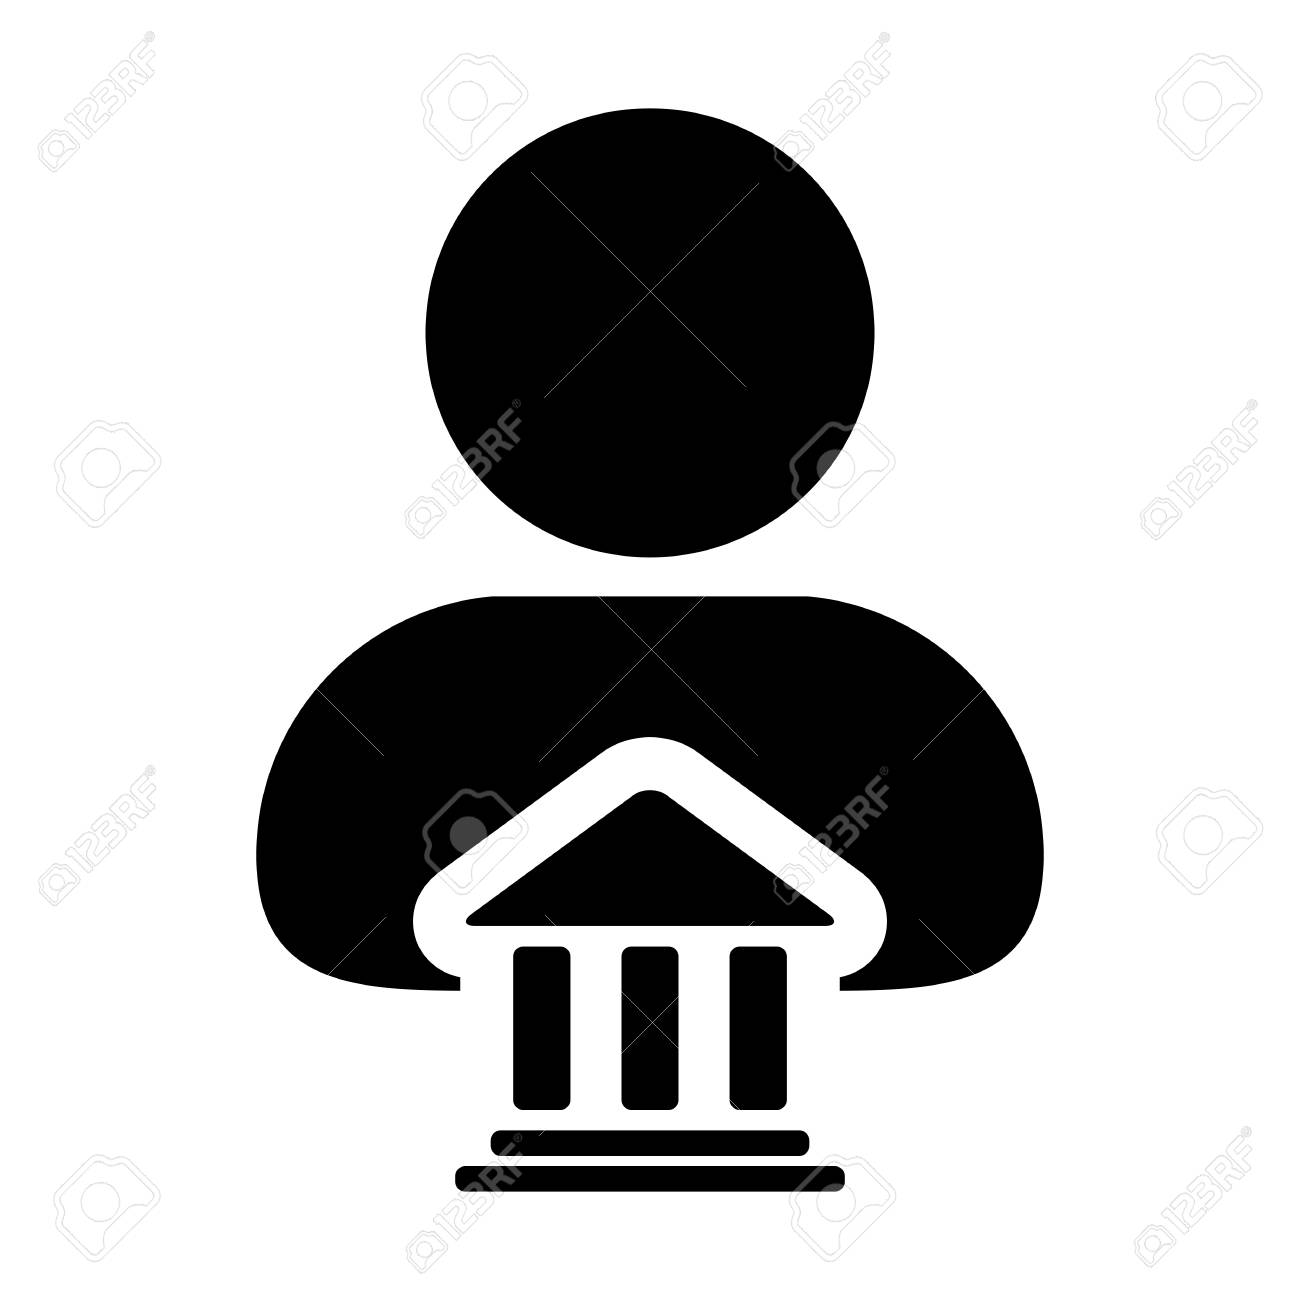 Bank Icon Vector With Person Profile Male Avatar Symbol For Banking